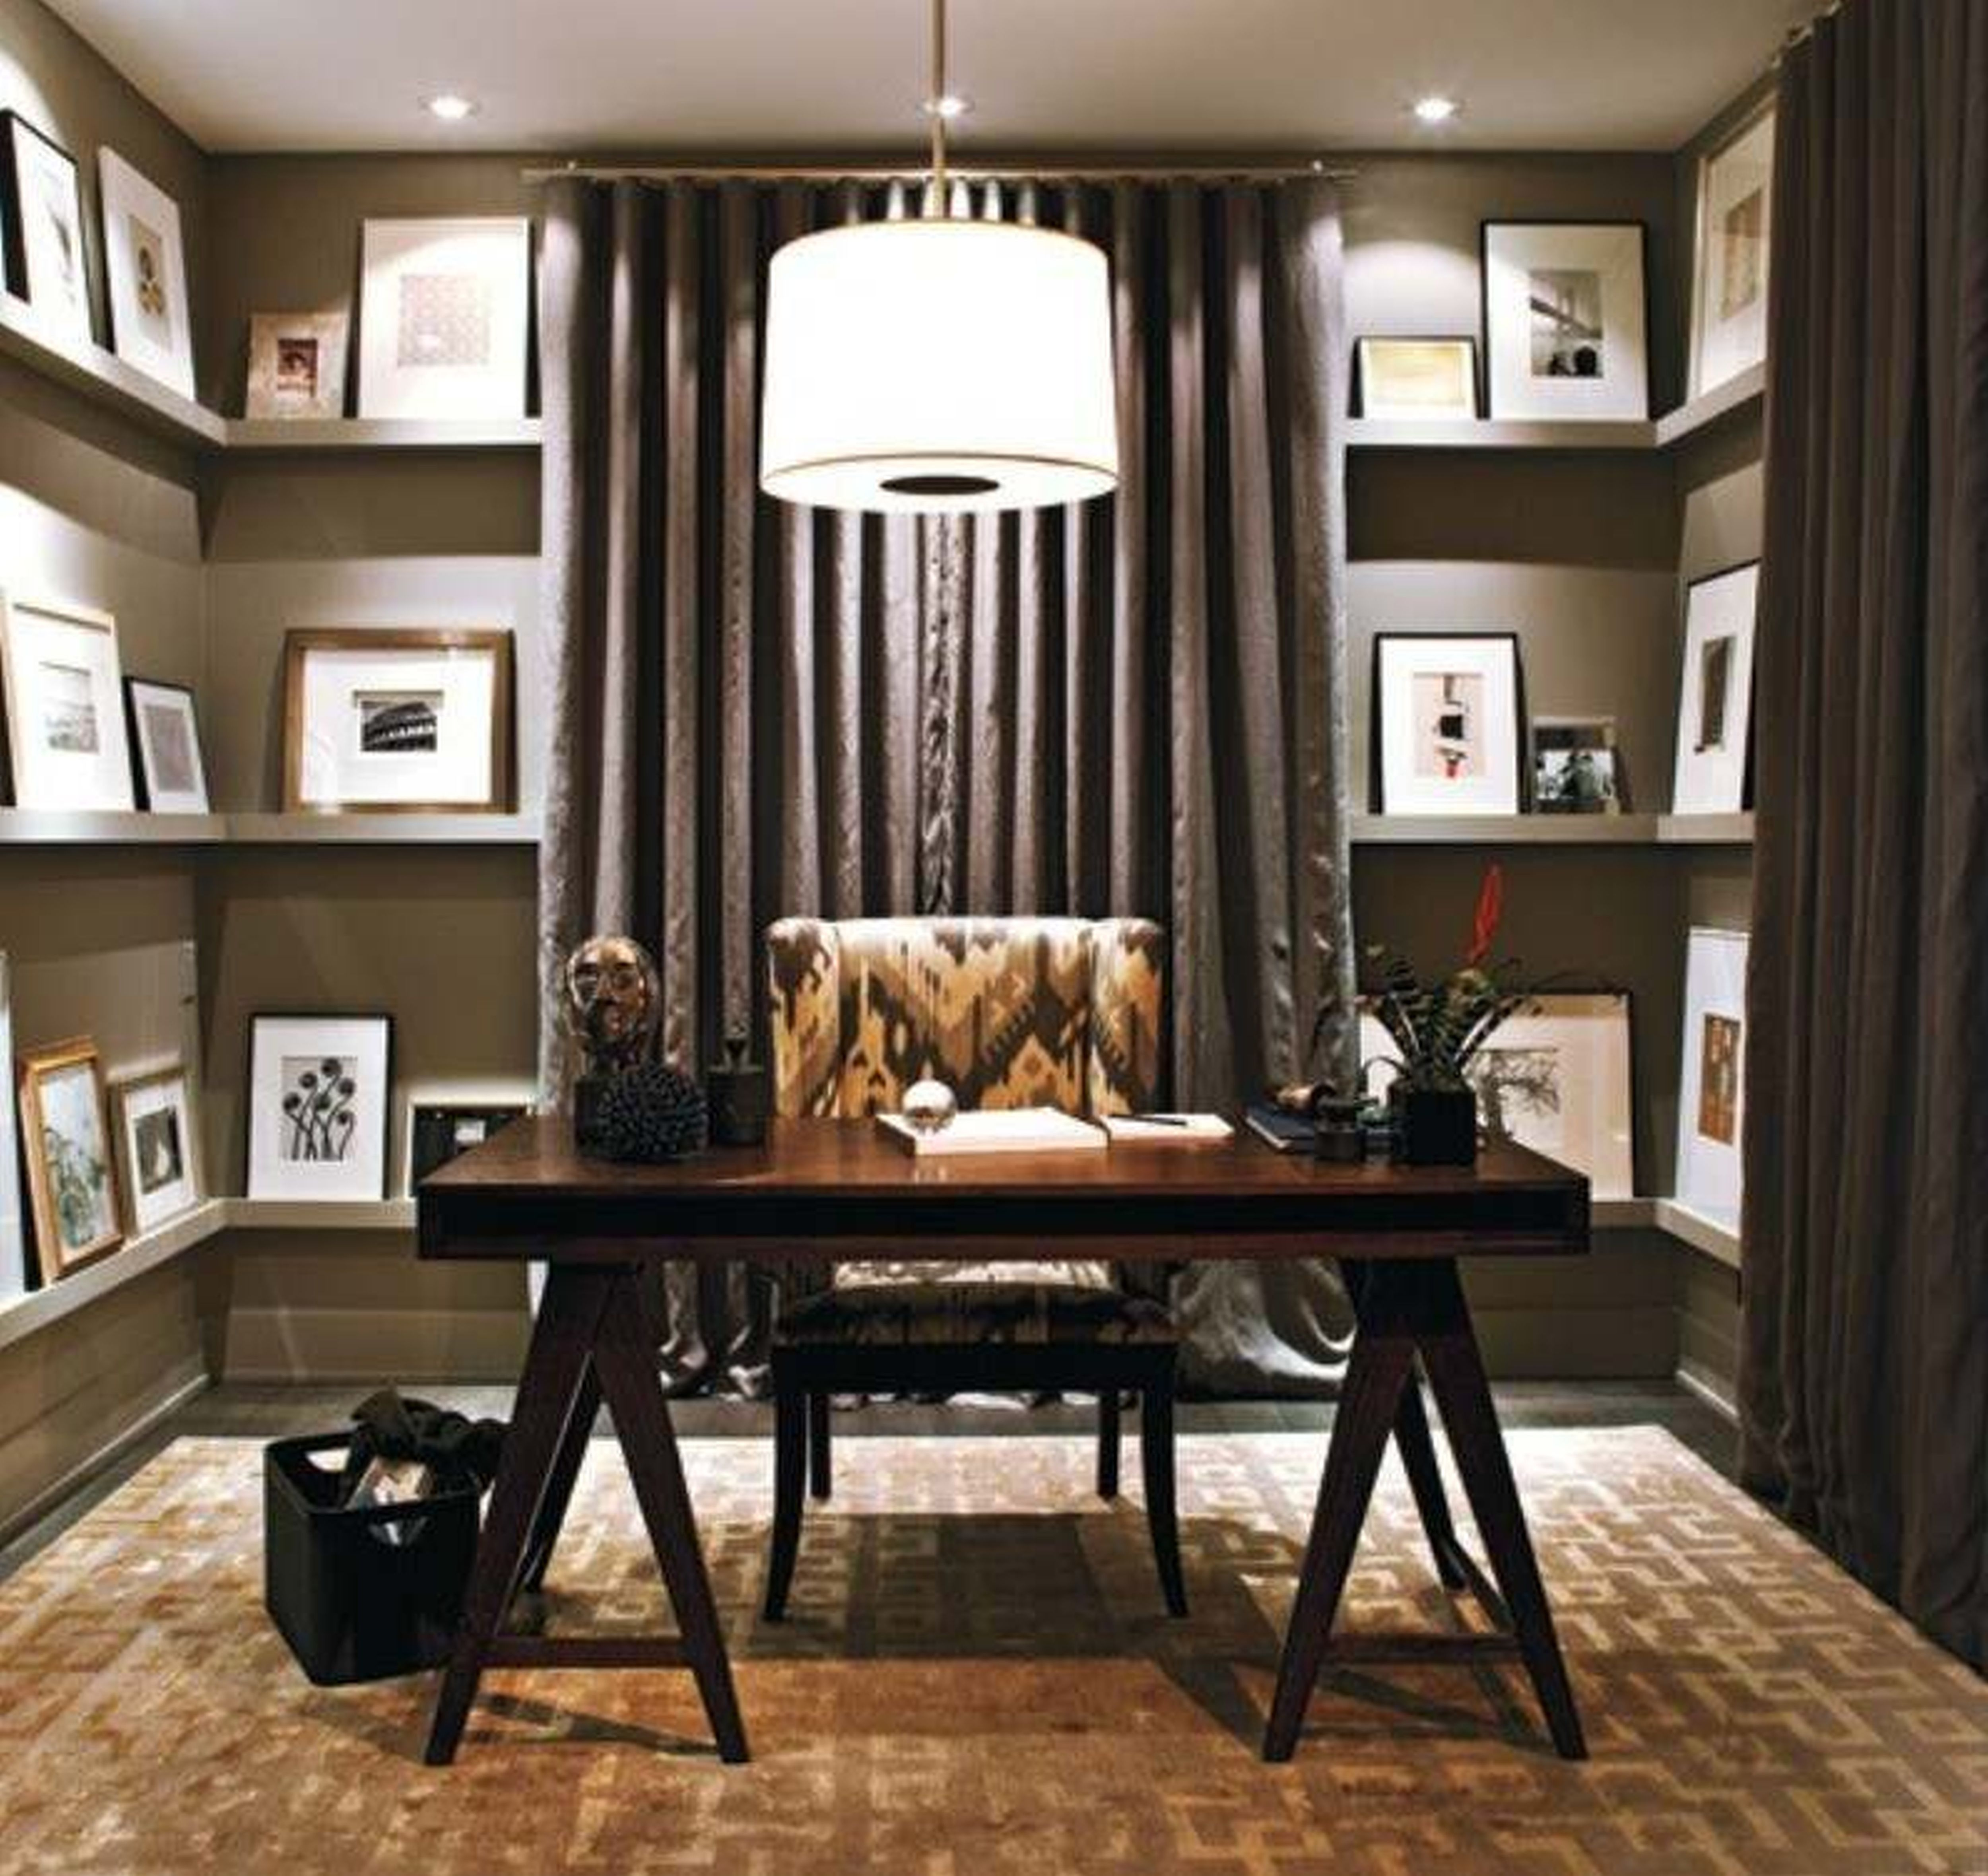 Office Interior Design Inspiration: 25 Stunning Modern Home Office Designs